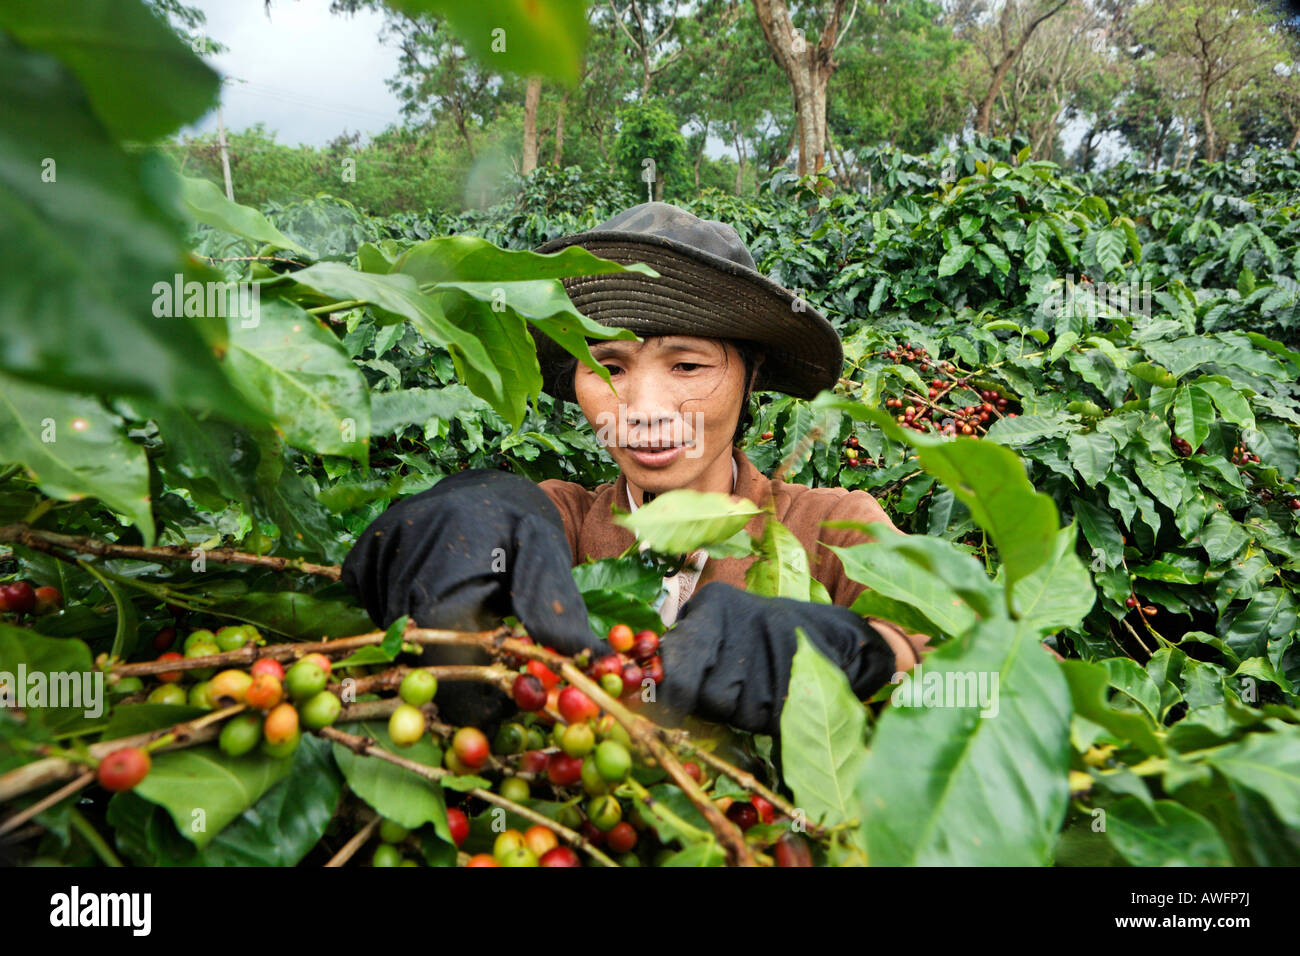 Woman picking red arabica coffee beans, Western Highlands Agro-forestry Scientific and Technical Institute, WASI, Stock Photo